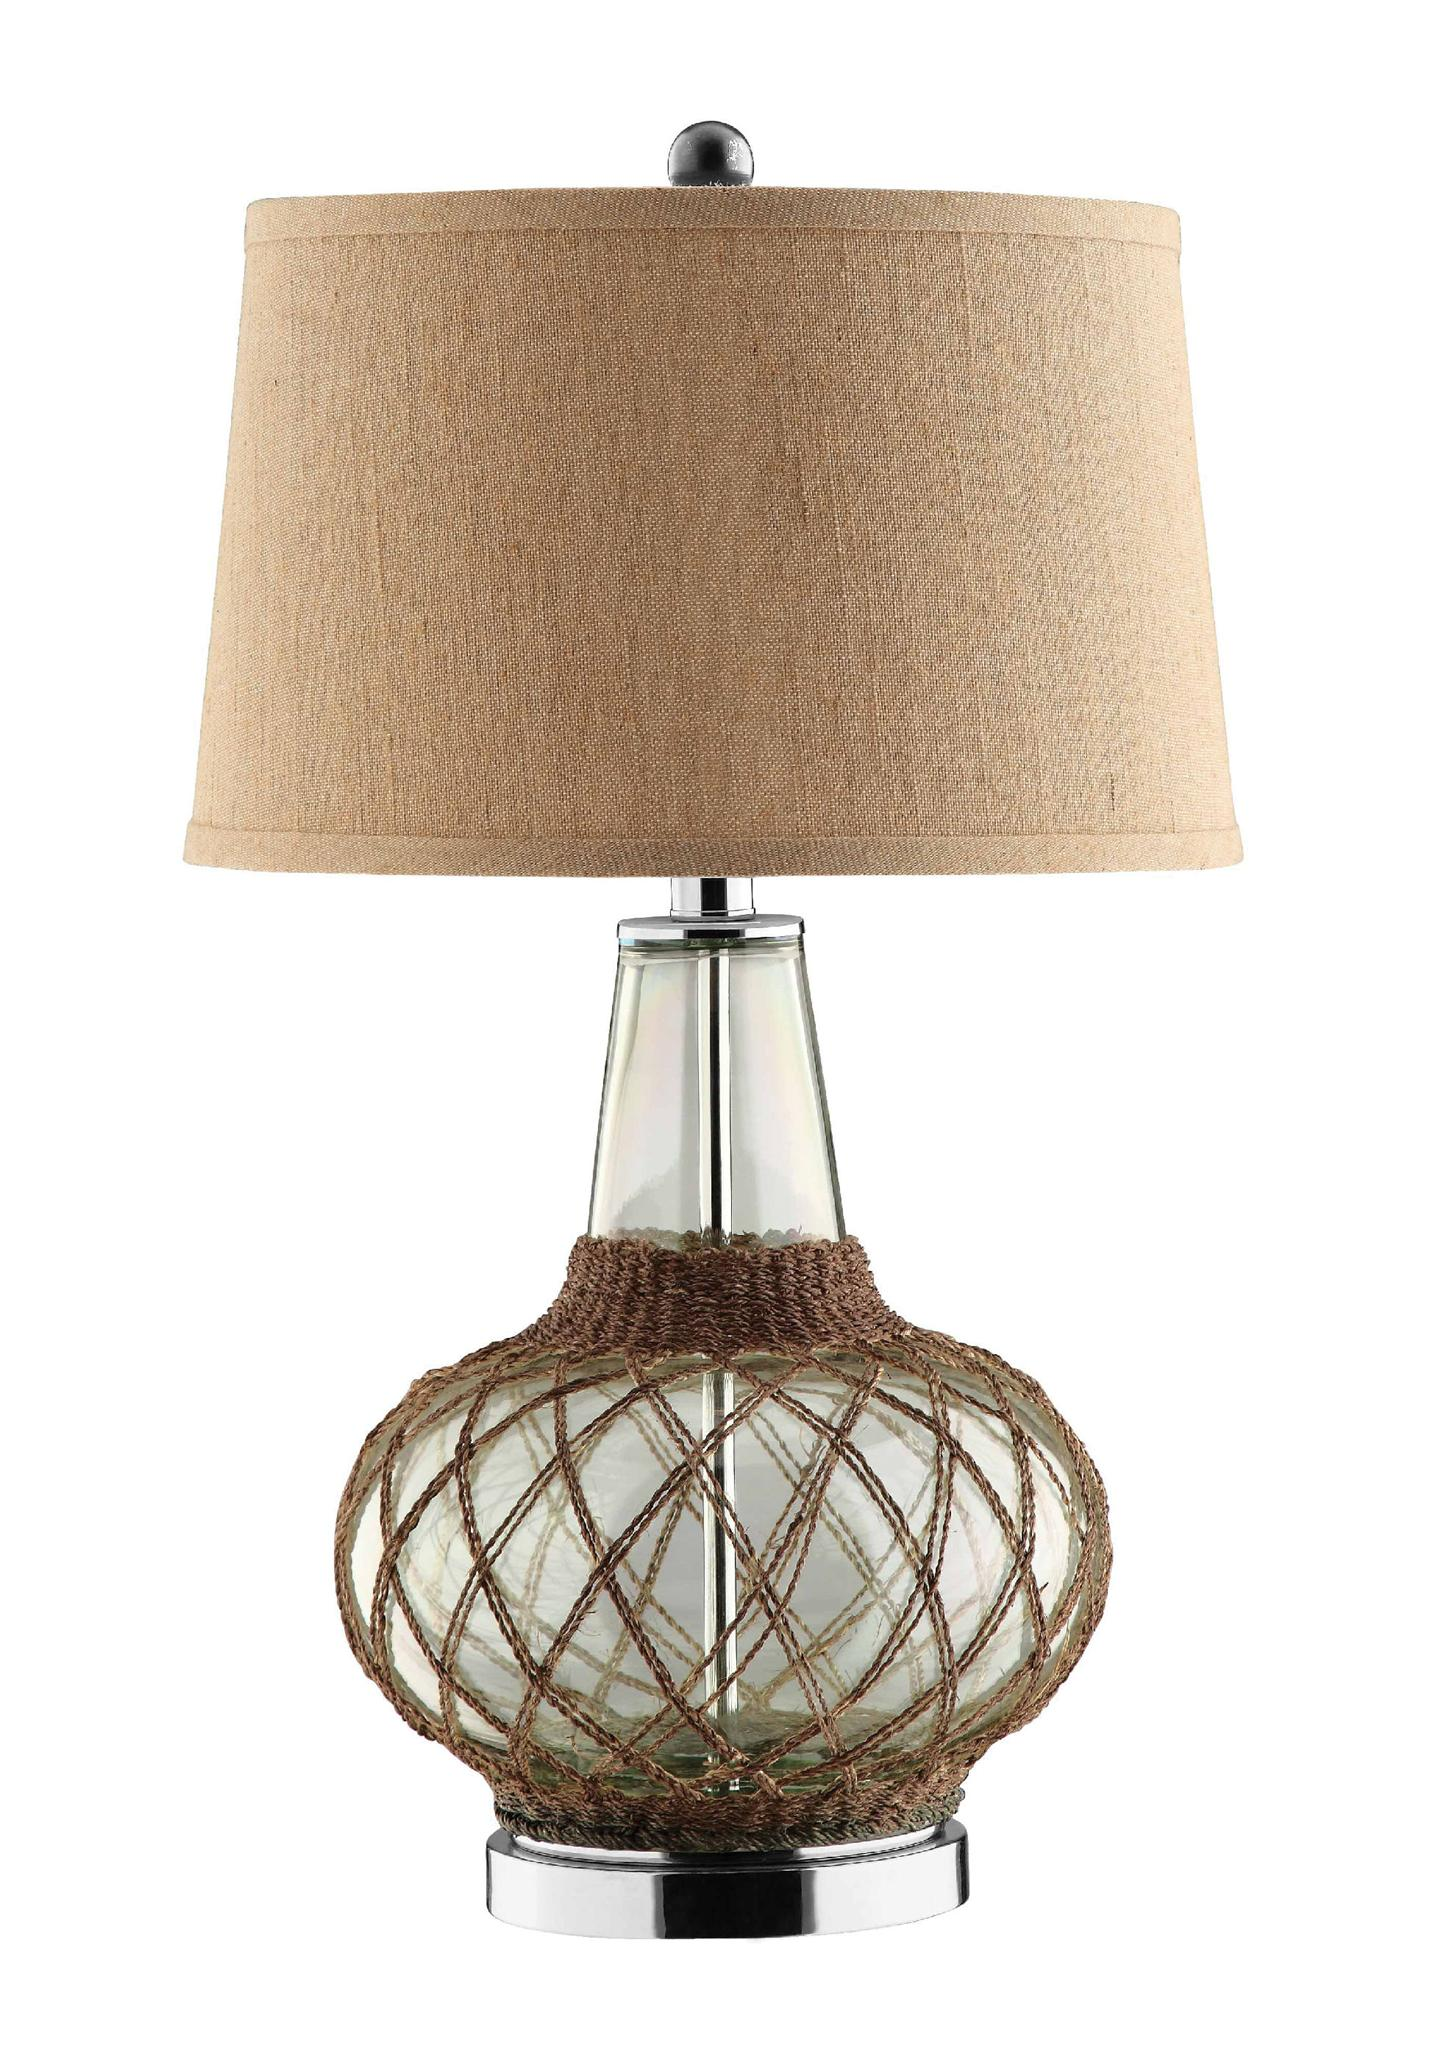 Glass table lamps target - Mercury Glass Table Lamp Target Calais Mercury Glass Table Lamp